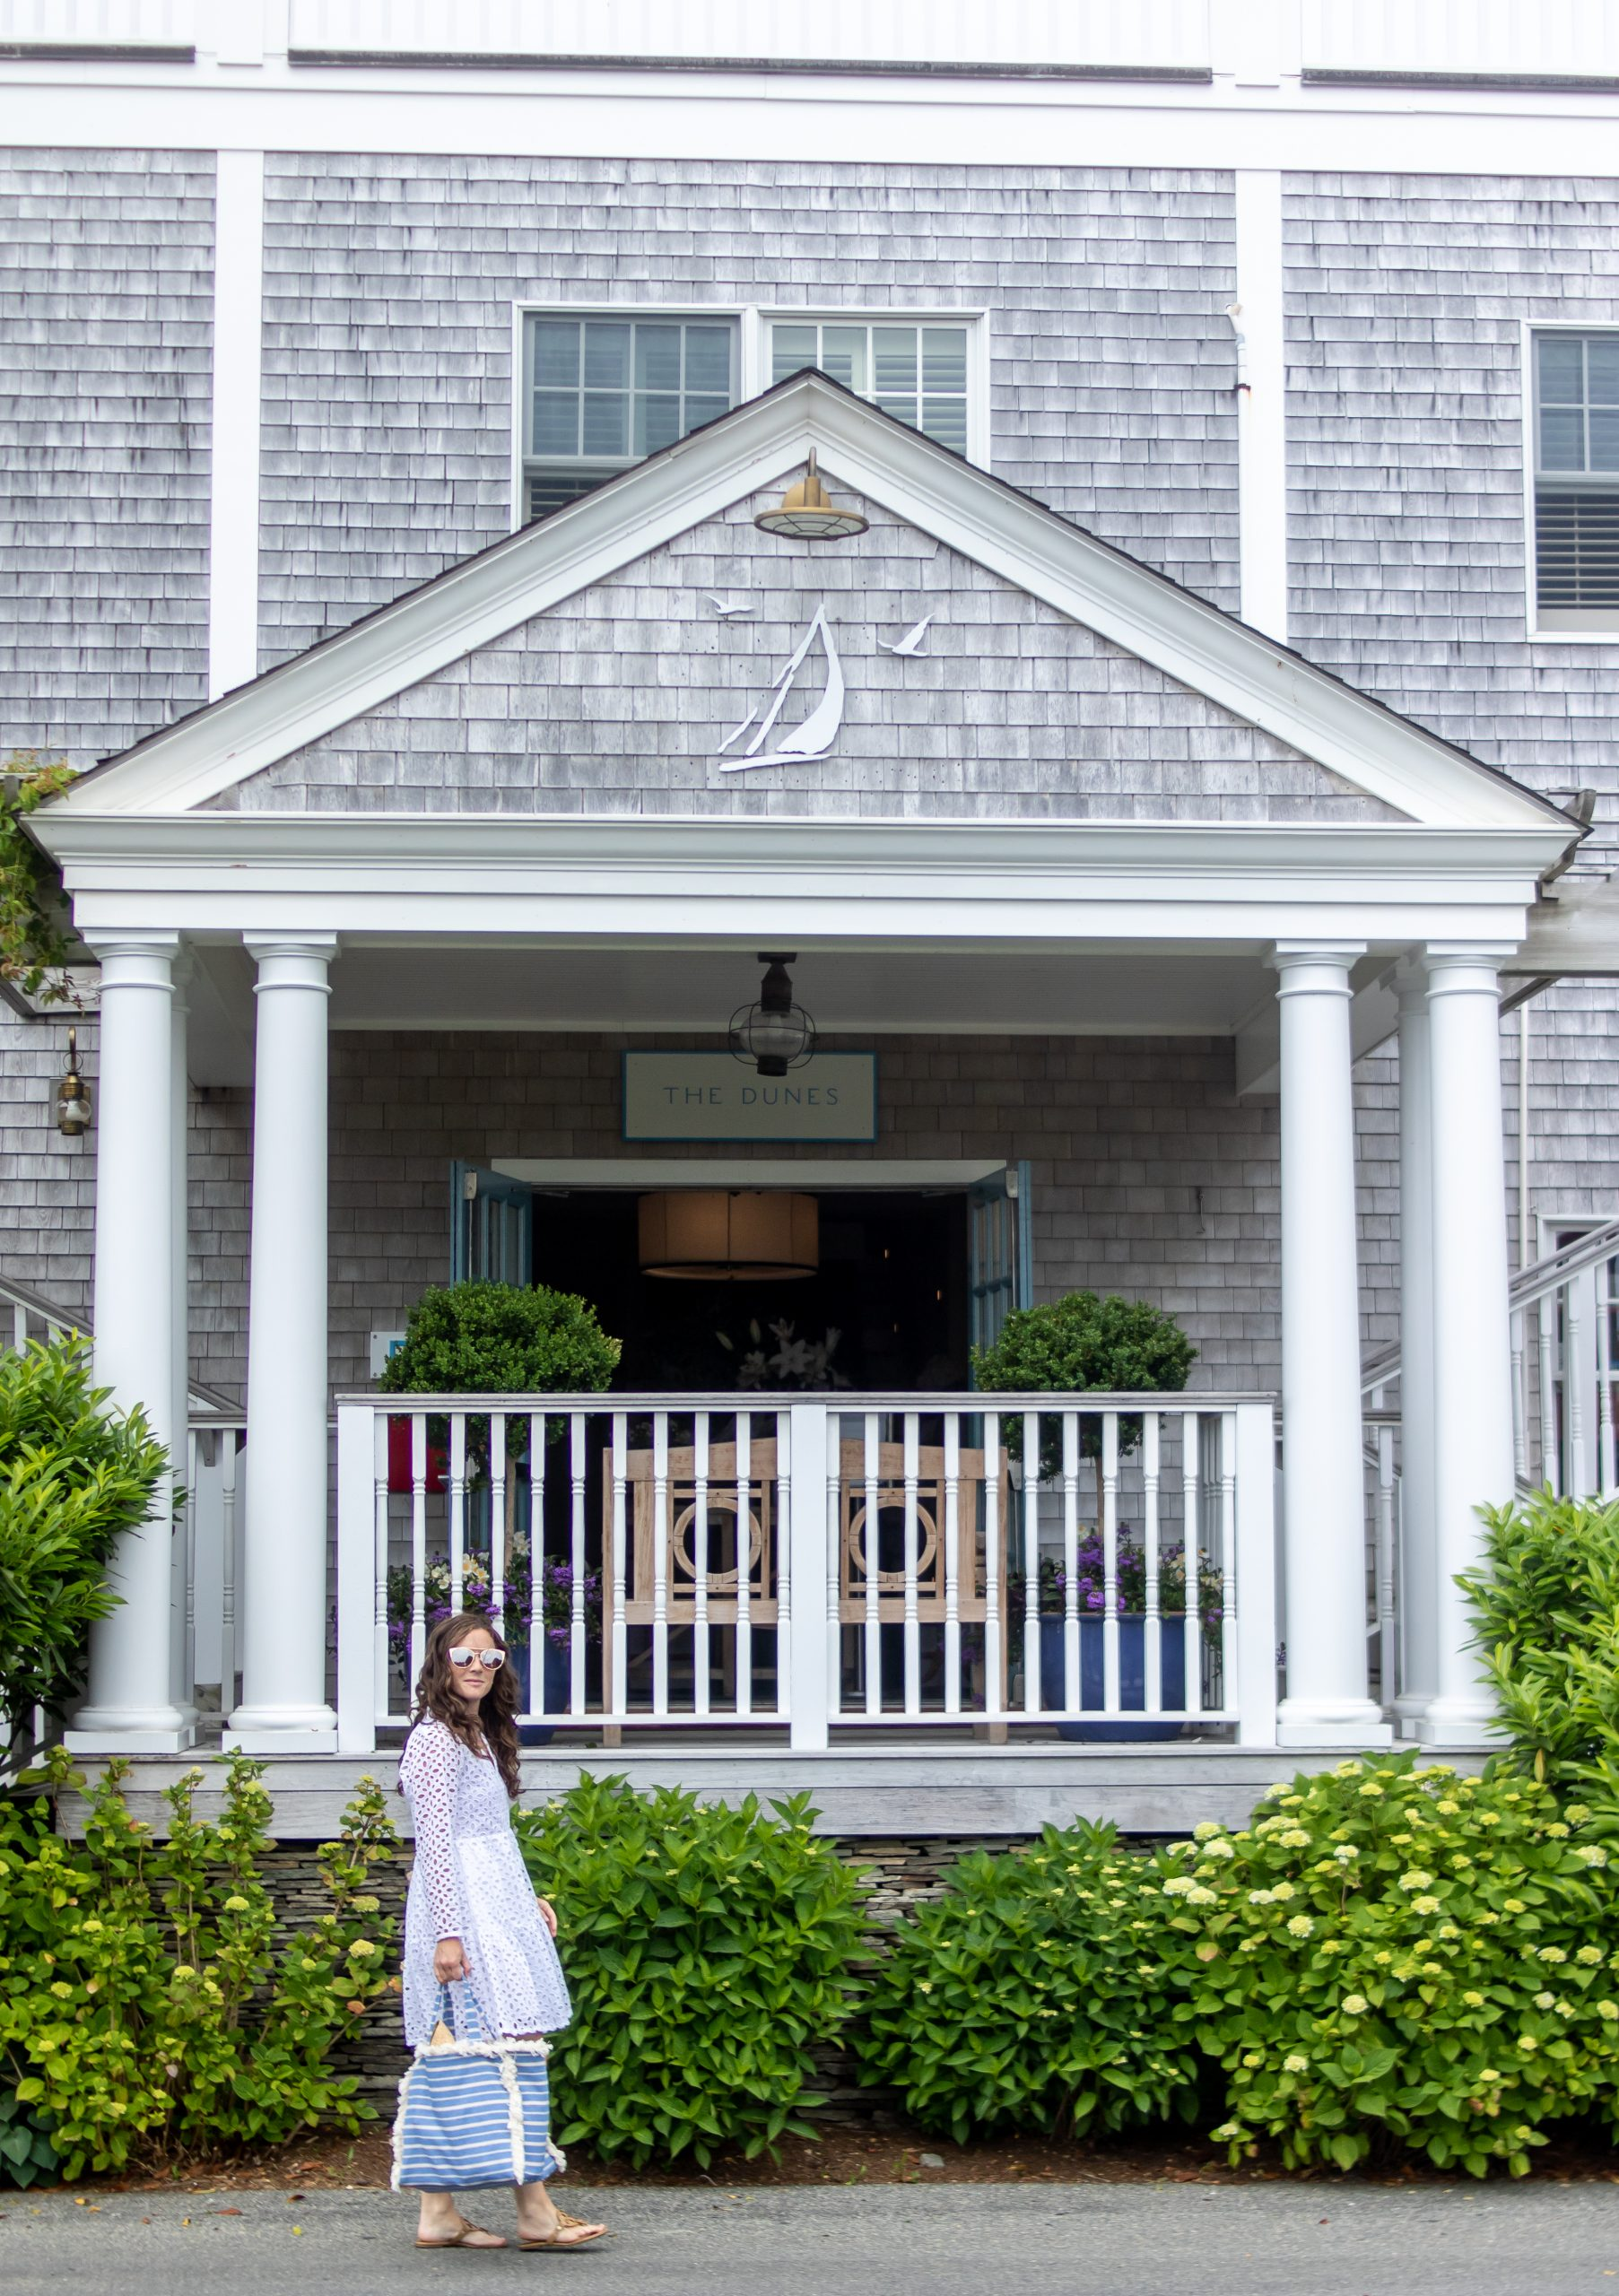 Our Family Vacation to the Winnetu Oceanside Resort in Martha's Vineyard